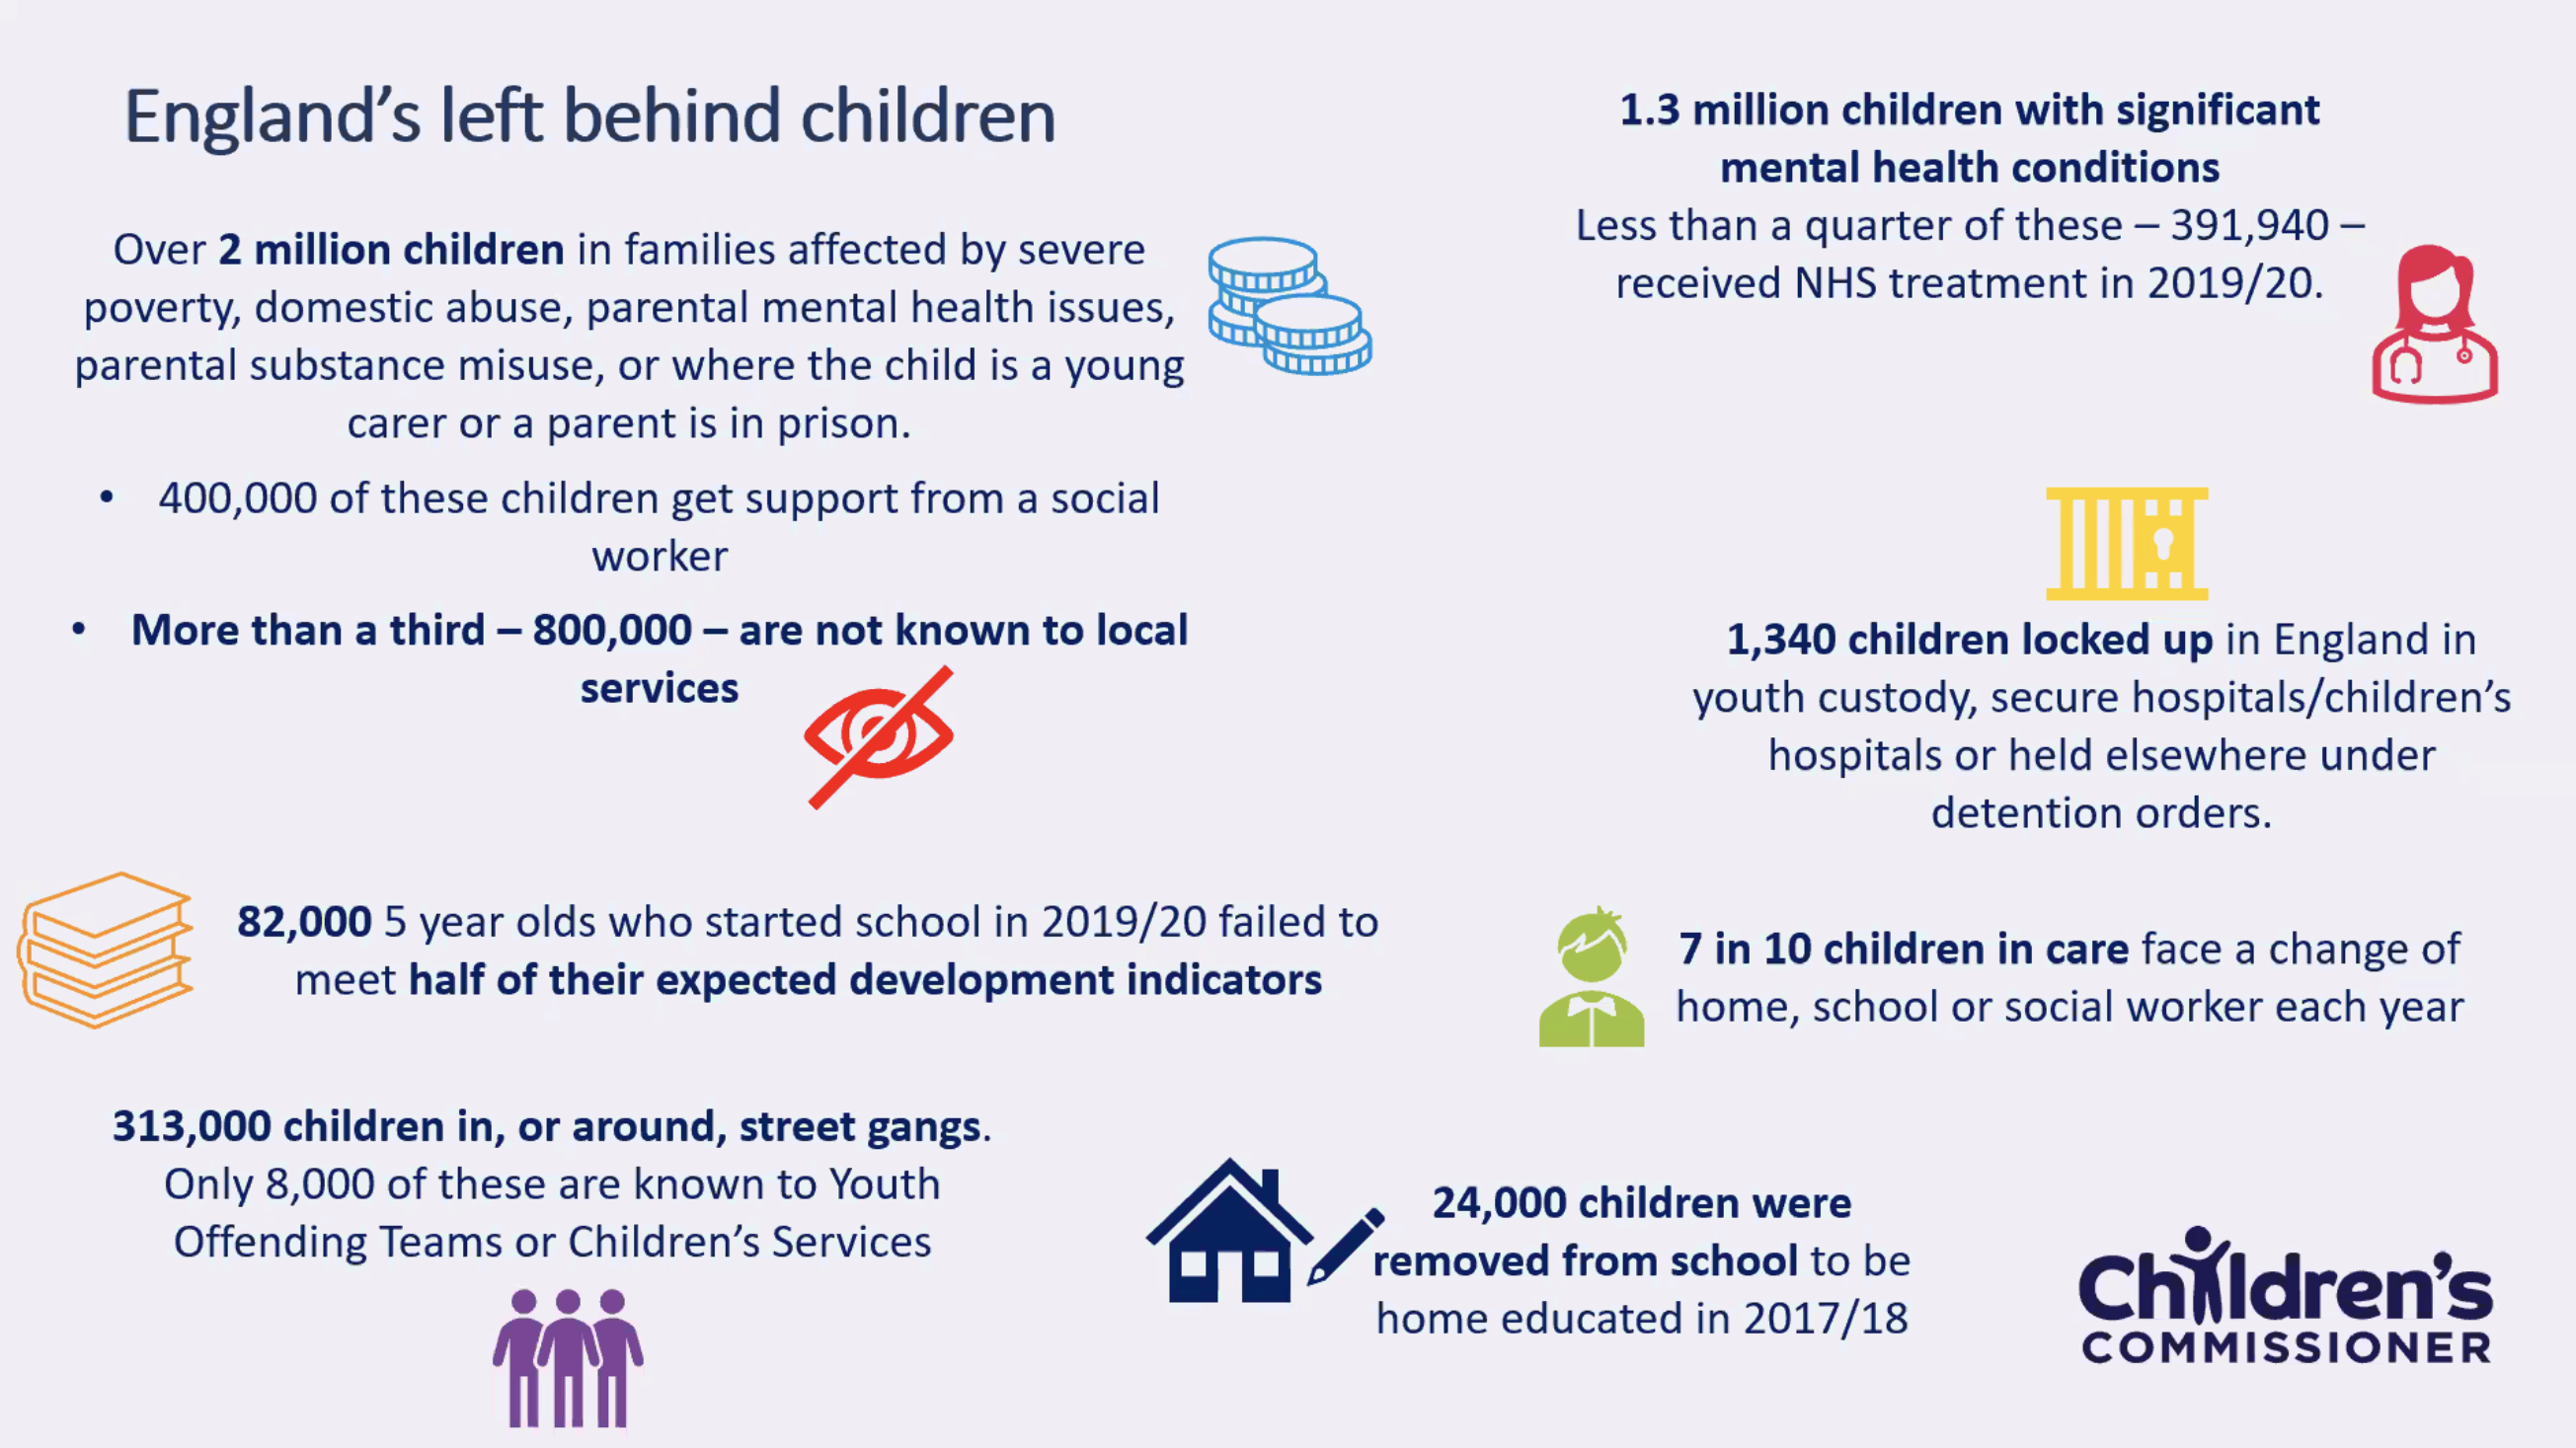 Stats on England's left behind children from Anne Longfield's final speech